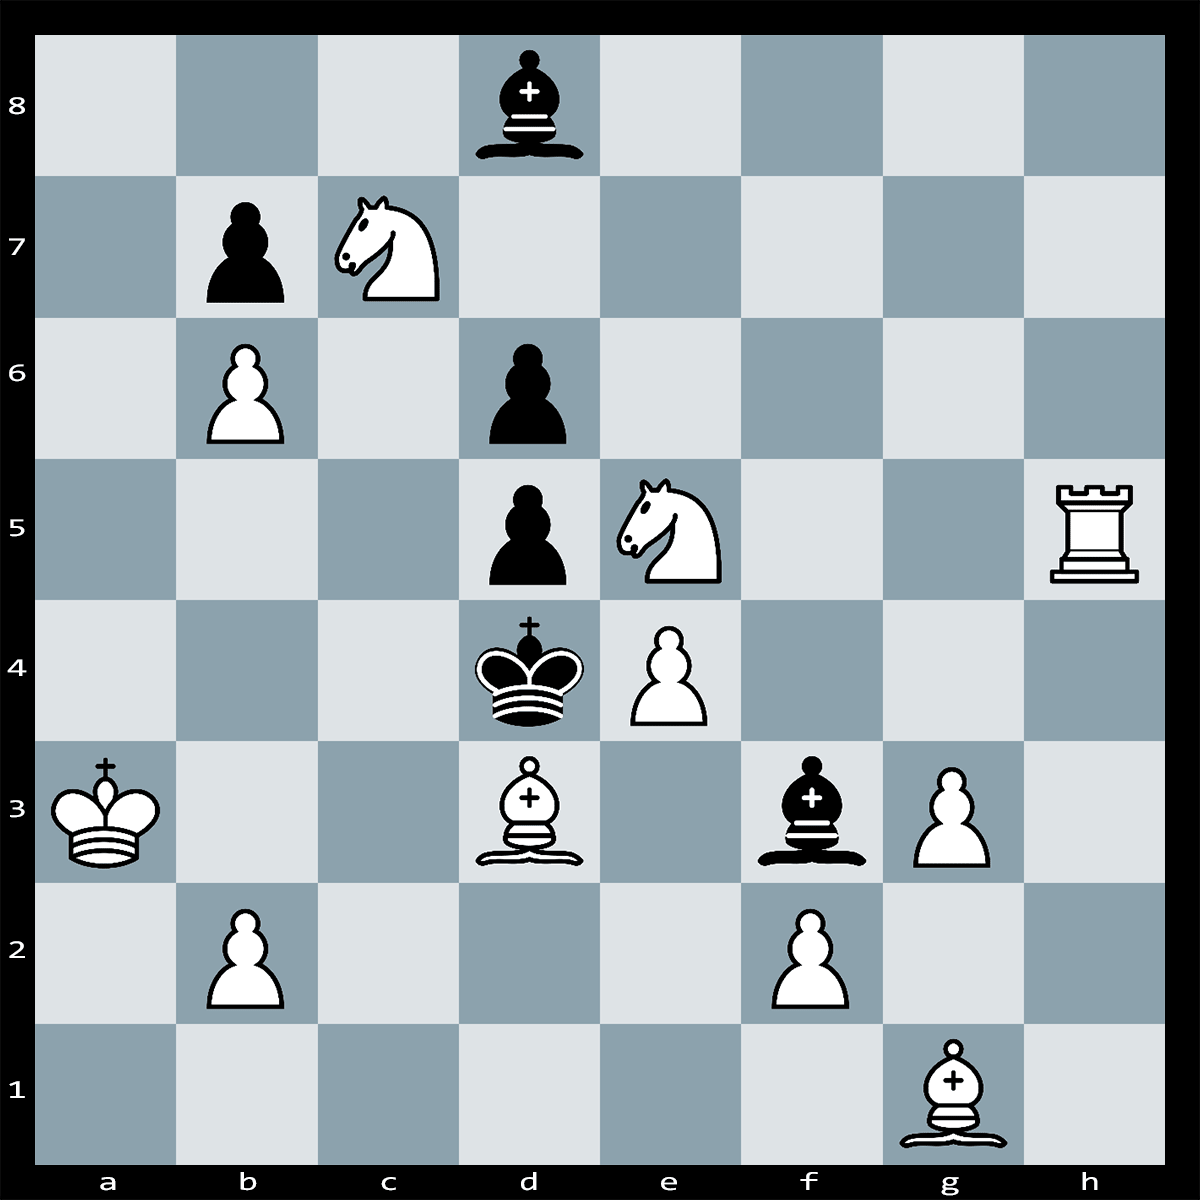 Mate in 1 Move, White to Play | Chess Puzzle #200